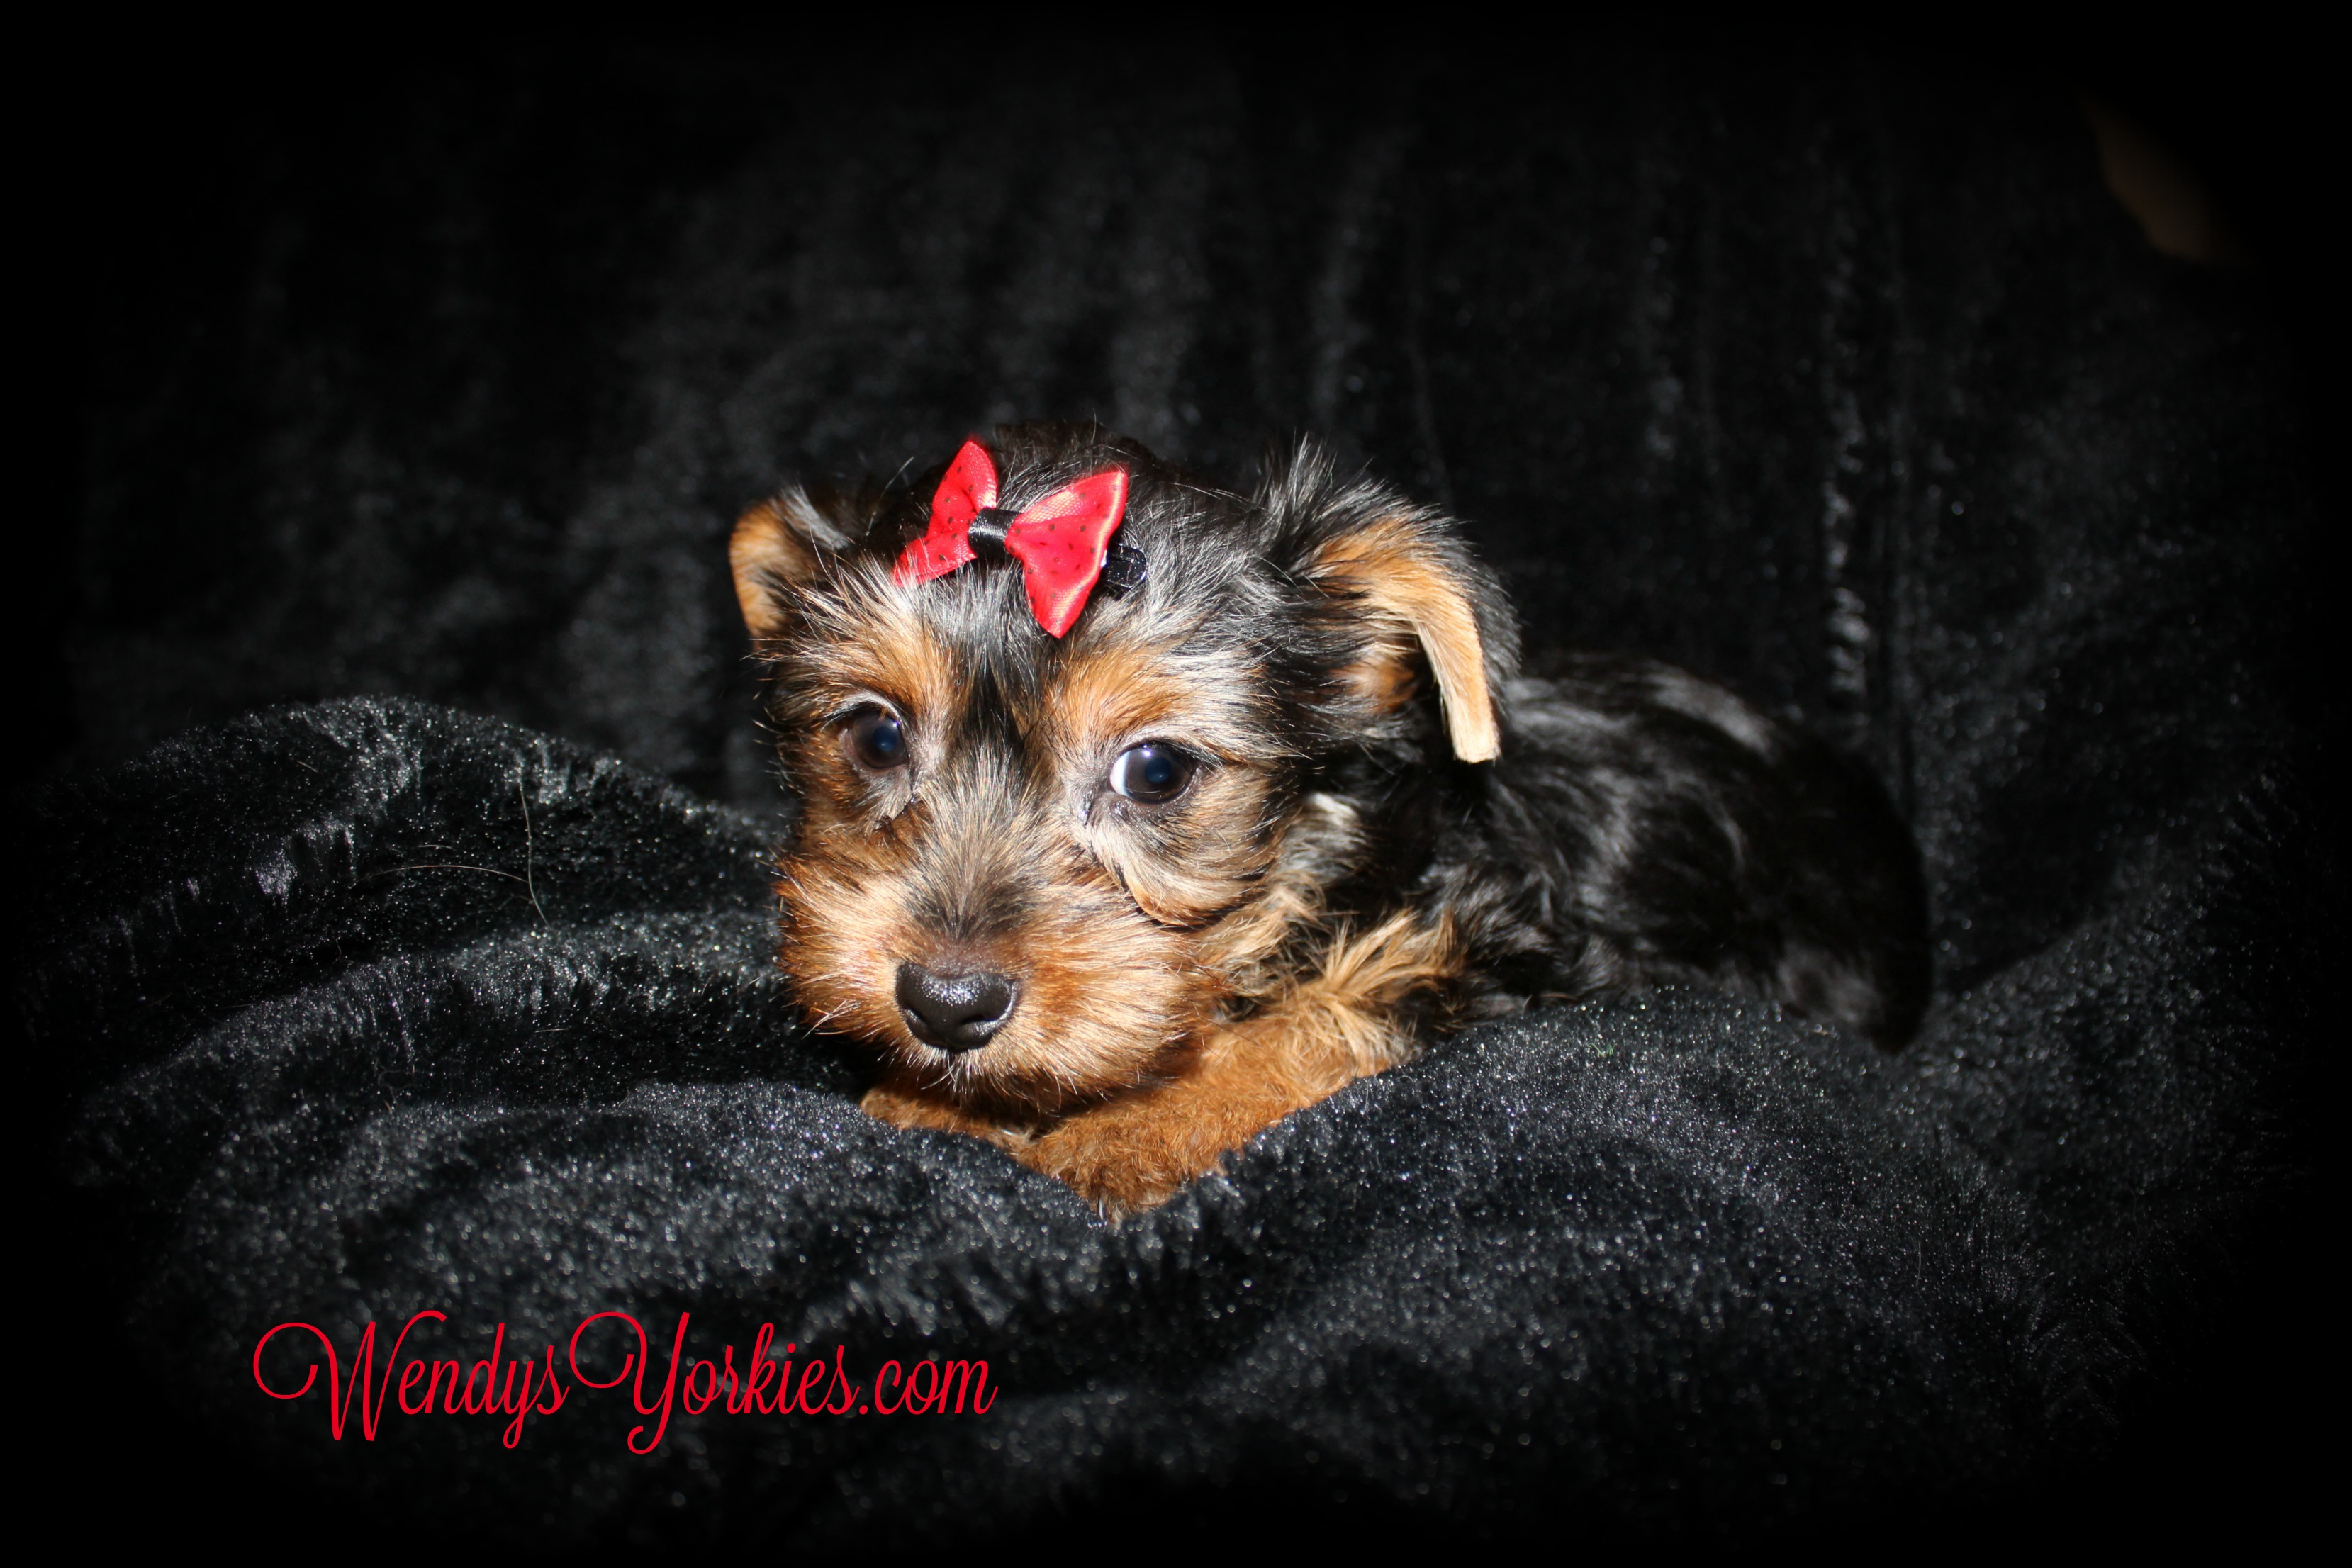 Weight chart for yorkie puppies gallery free any chart examples weight chart for yorkie puppies images free any chart examples weight chart for yorkie puppies gallery nvjuhfo Images